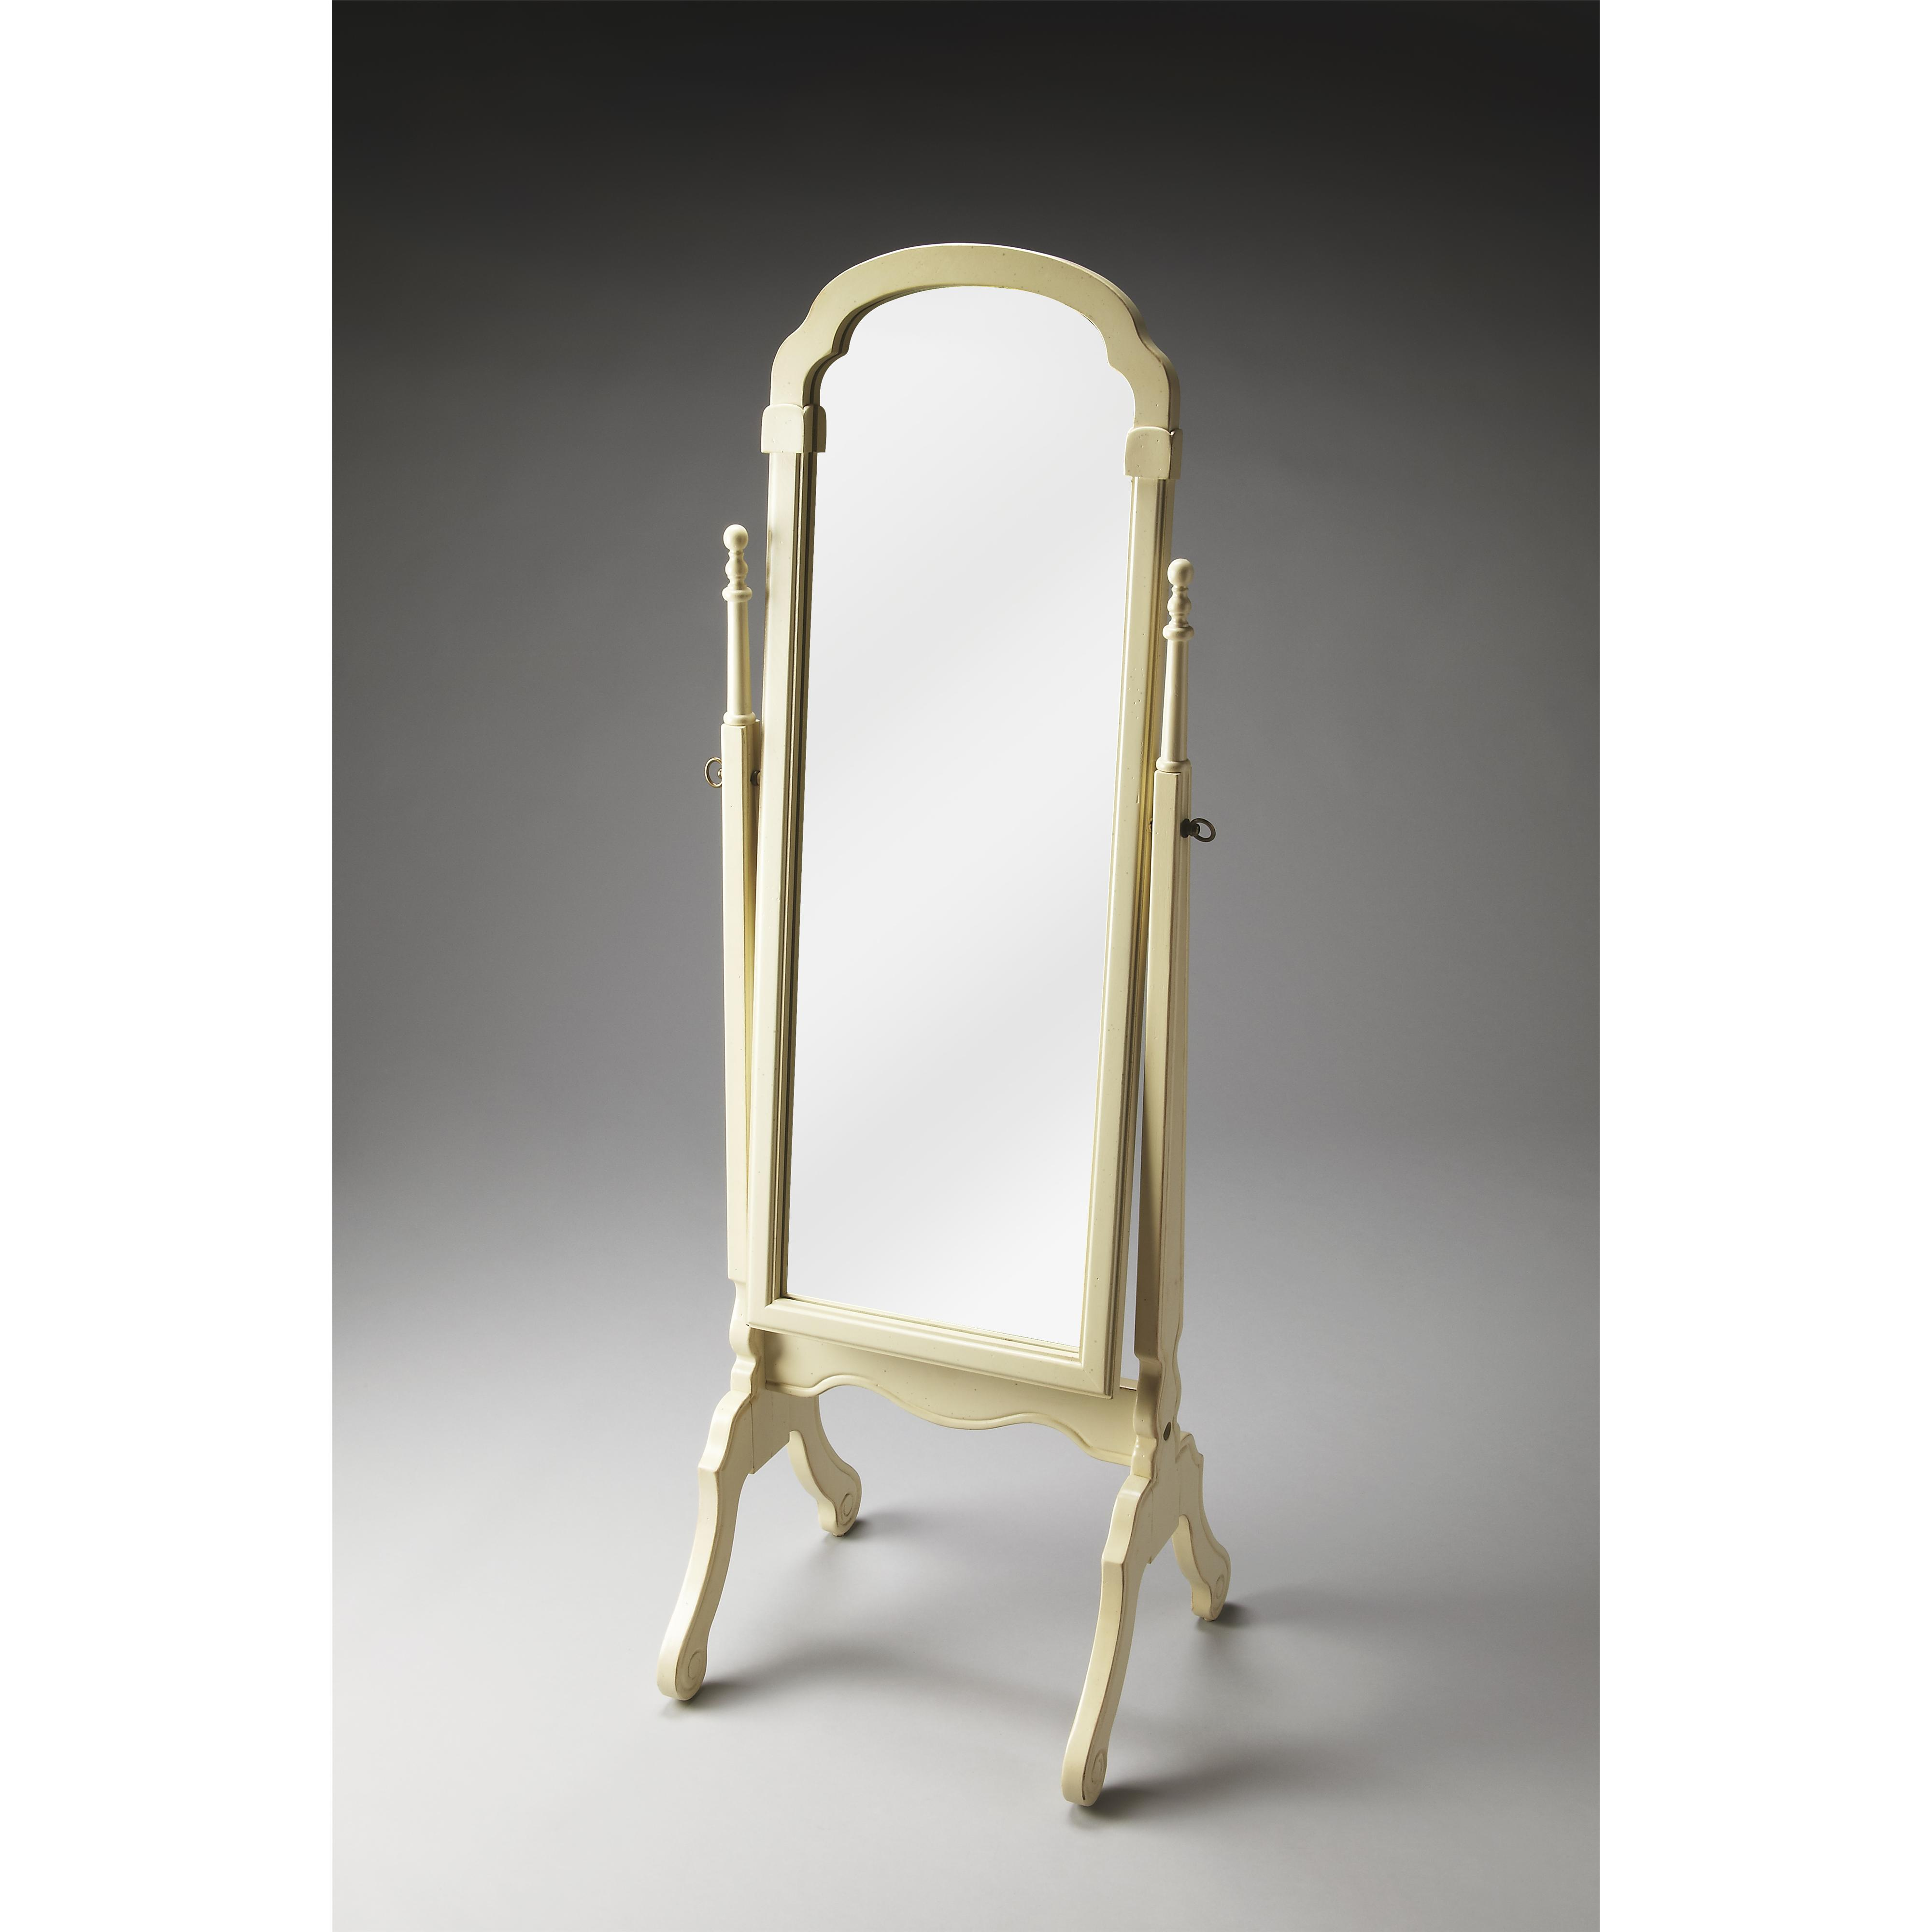 Butler Specialty Company Artist's Originals Cheval Mirror - Item Number: 1911222